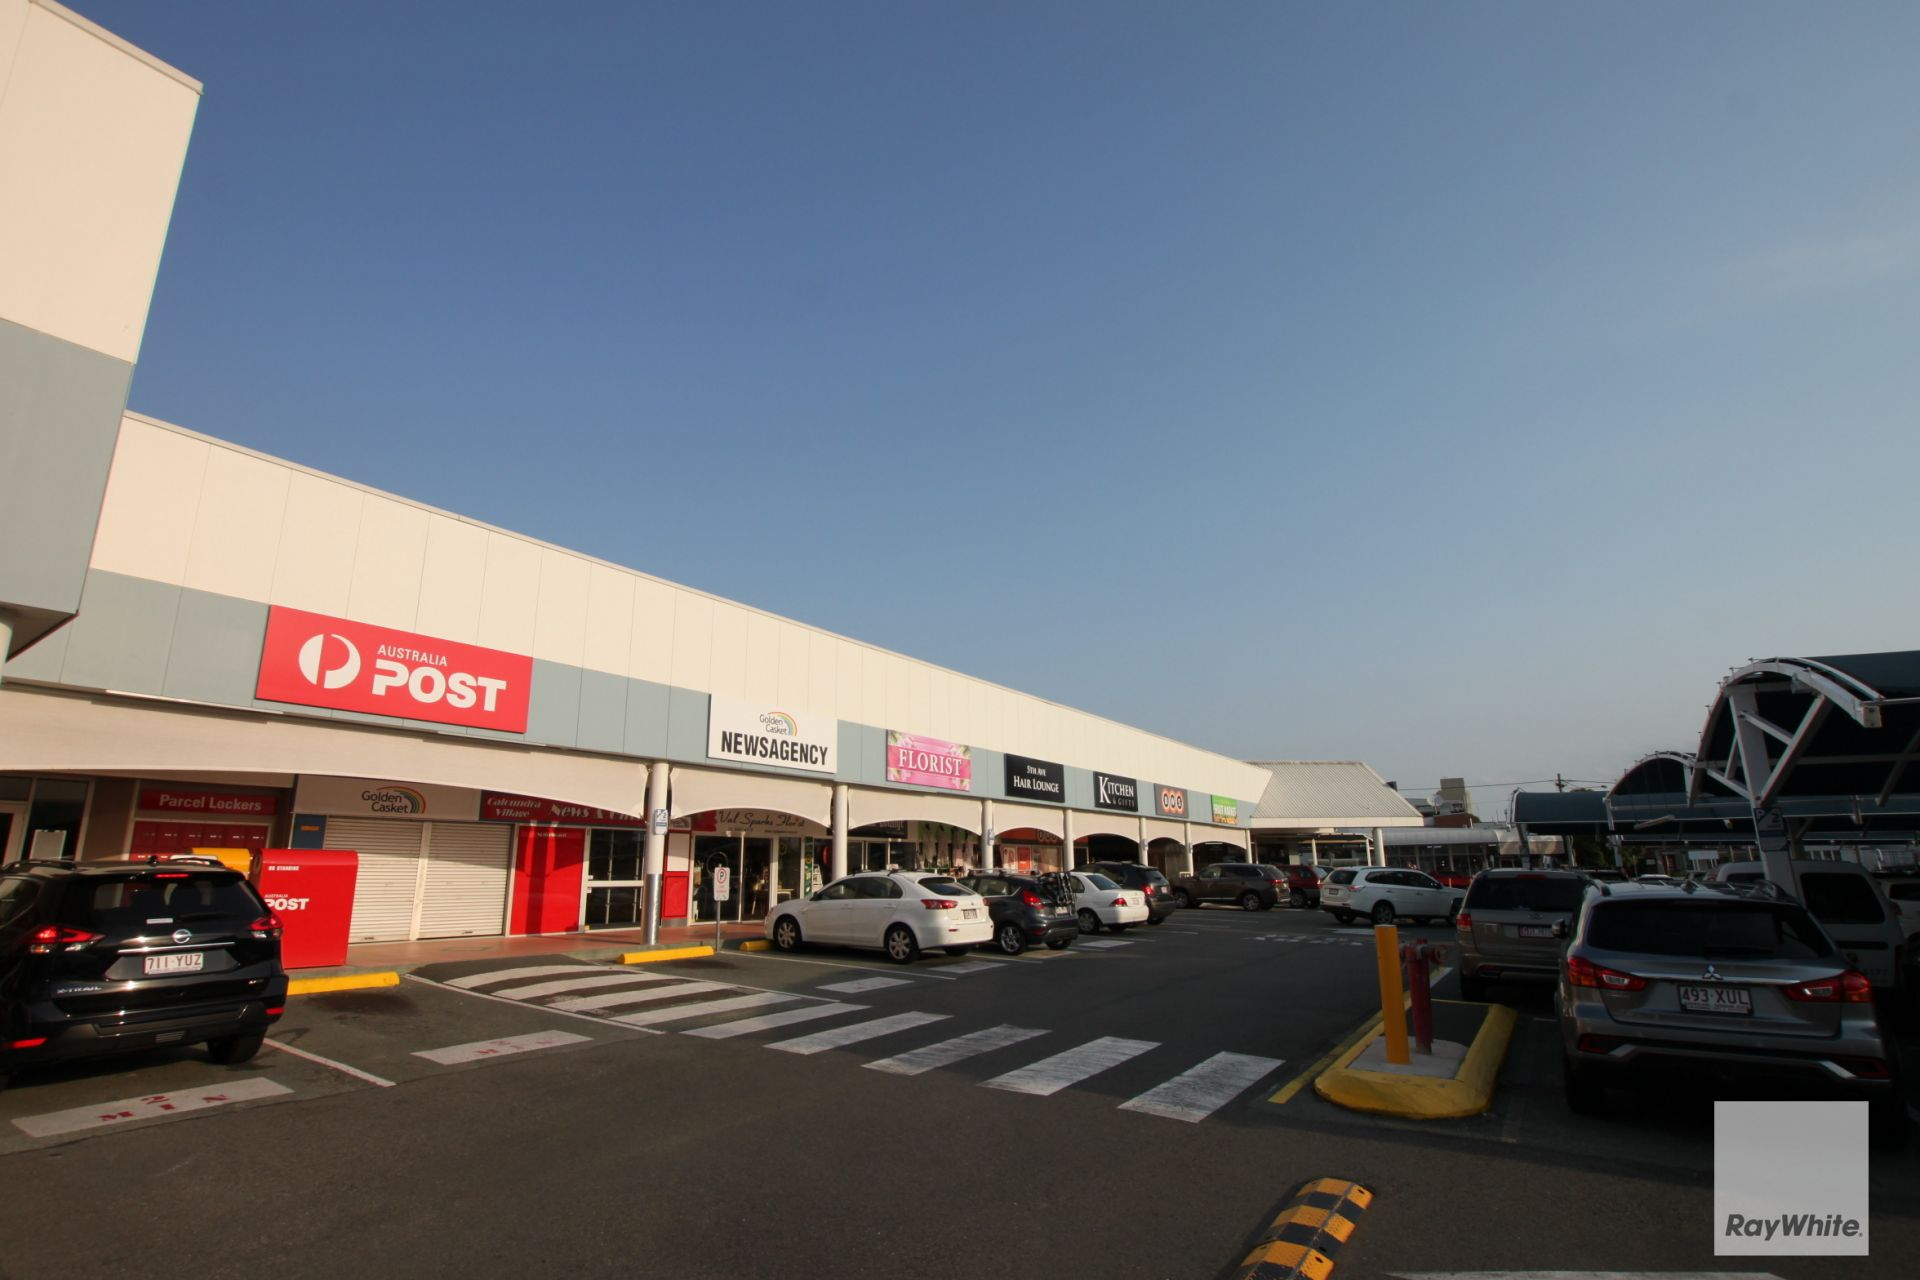 Retail tenancy in complex open 7 days -  IGA anchor tenant